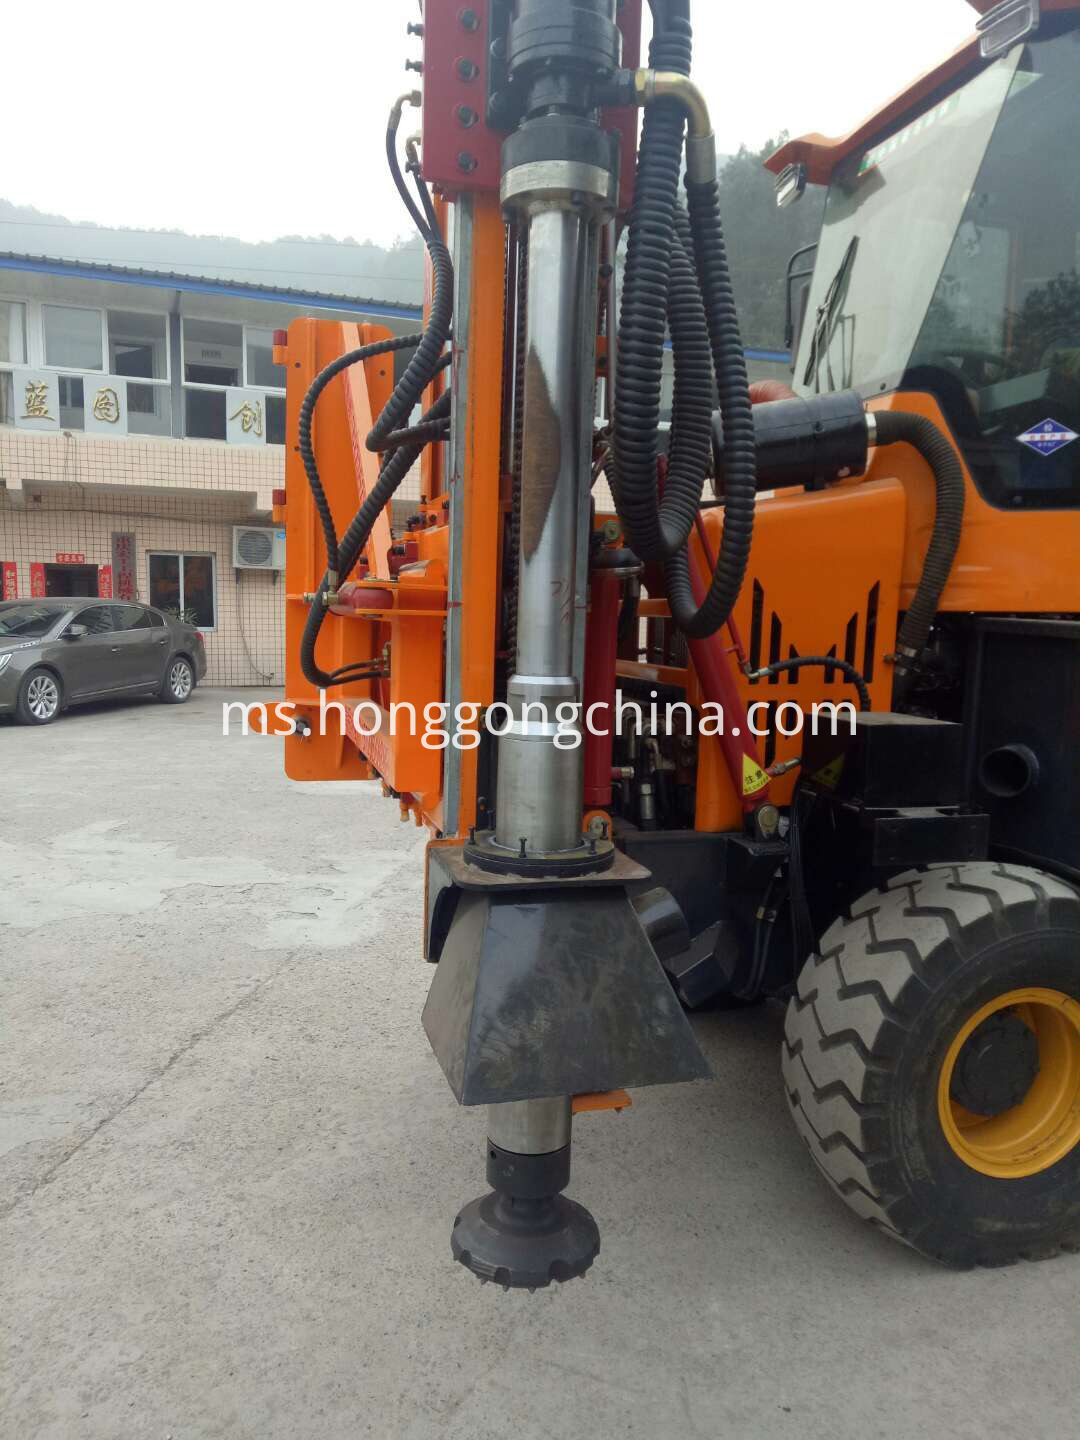 County Road Construction Driling Machine